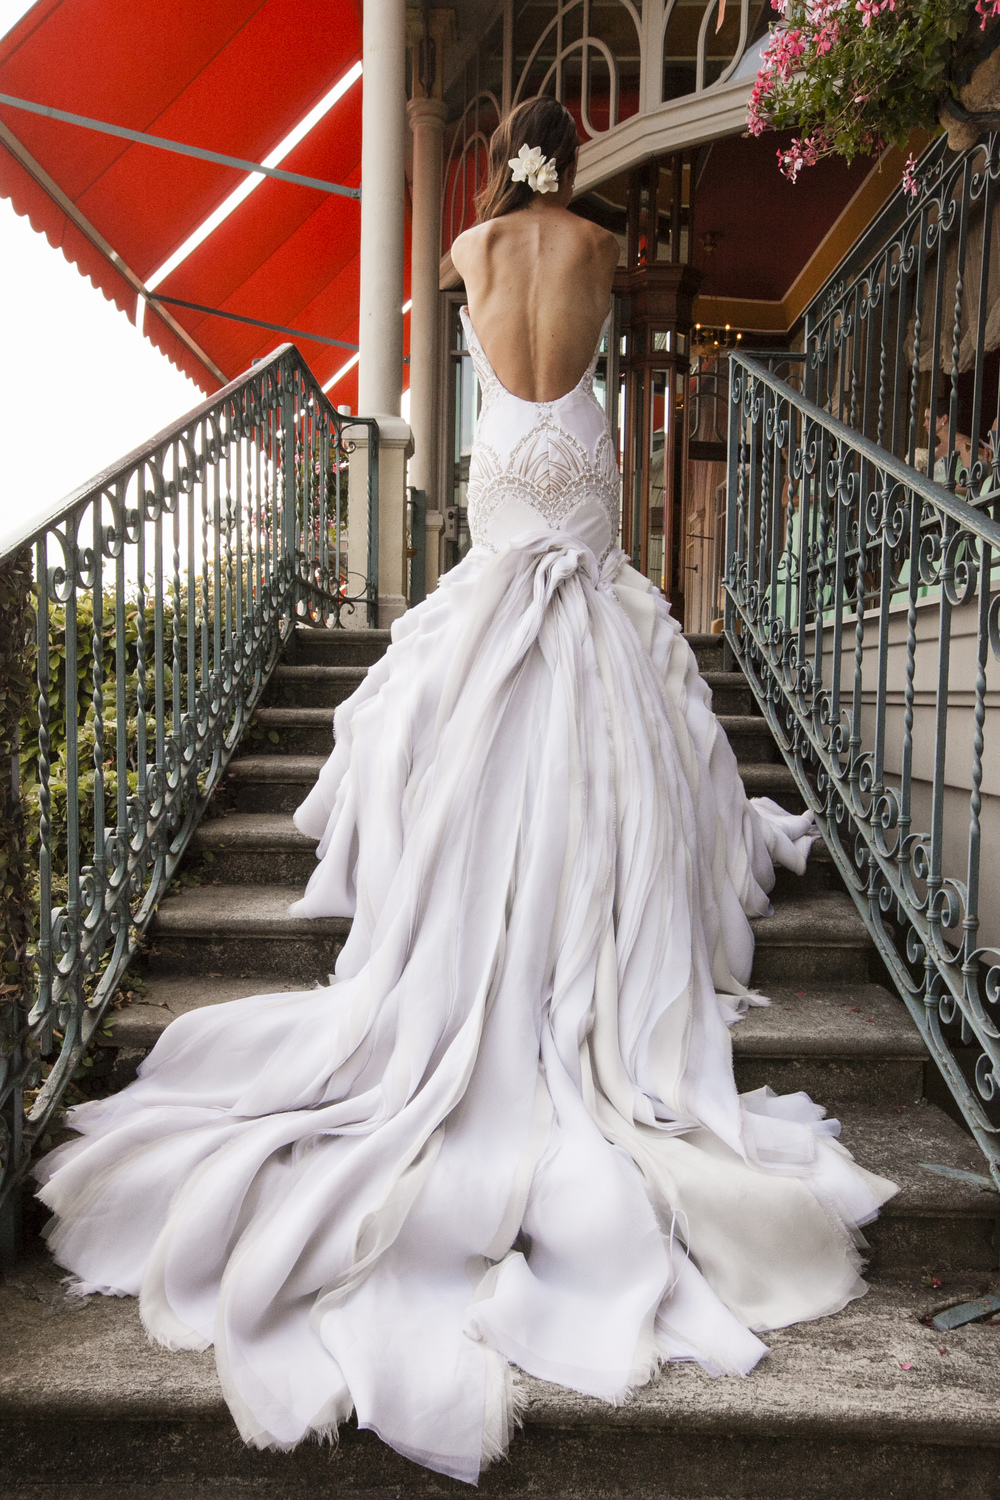 Ceci_New_York_Wedding_Lake_Como_Italy_Luxury_Style_Real_Bride_30.jpg